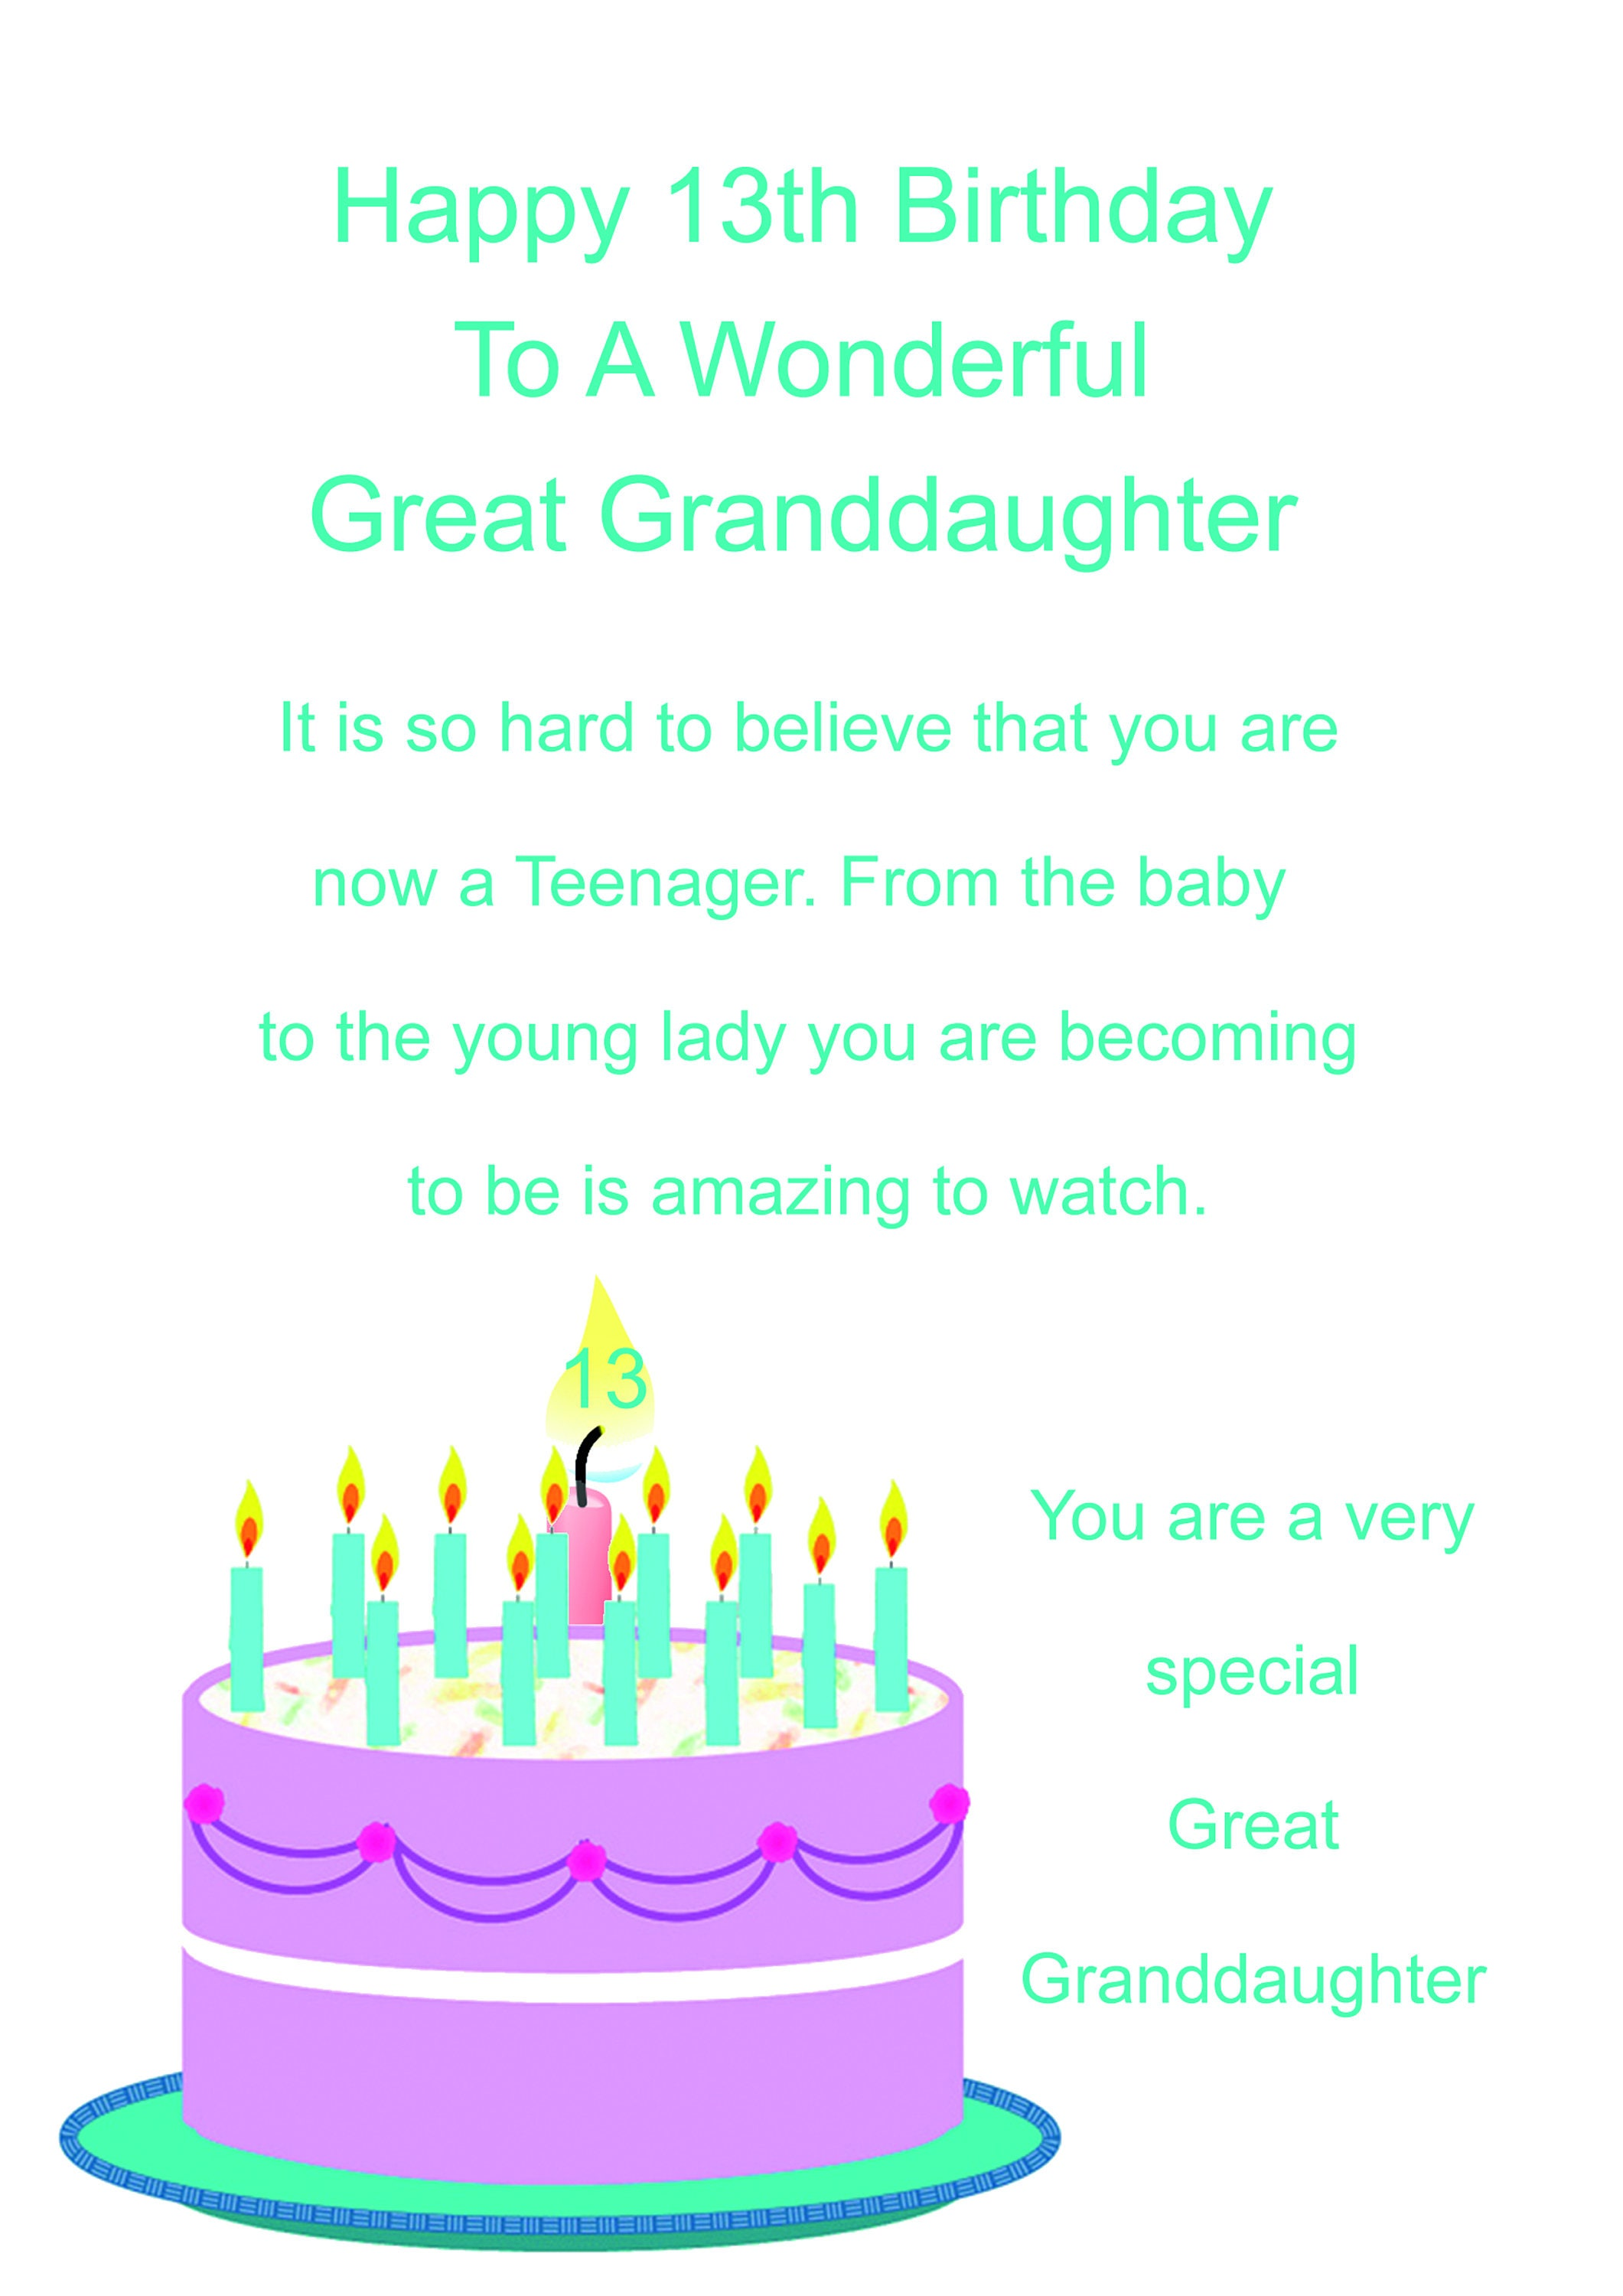 Great Granddaughter 13 Birthday Card